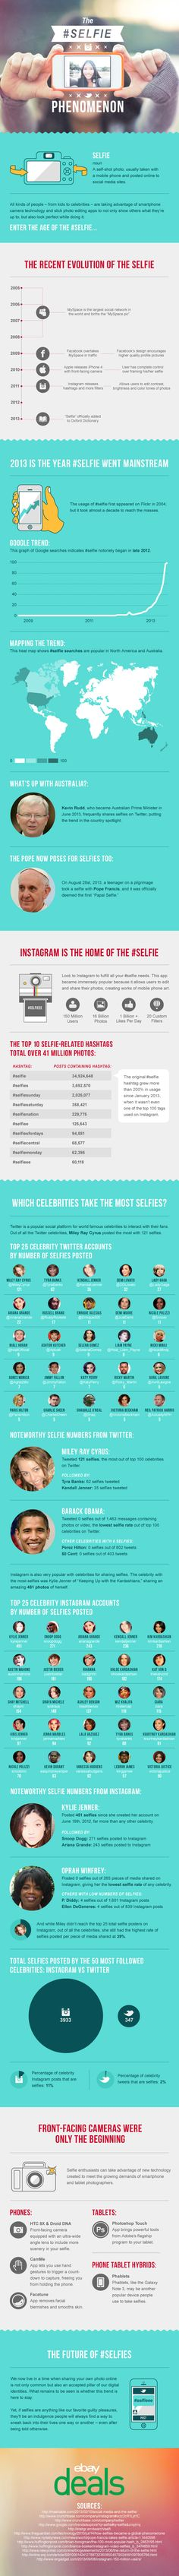 Find out more than you ever wanted to know about the #selfie, including which celebrities are the most narcissistic when it comes to social media.